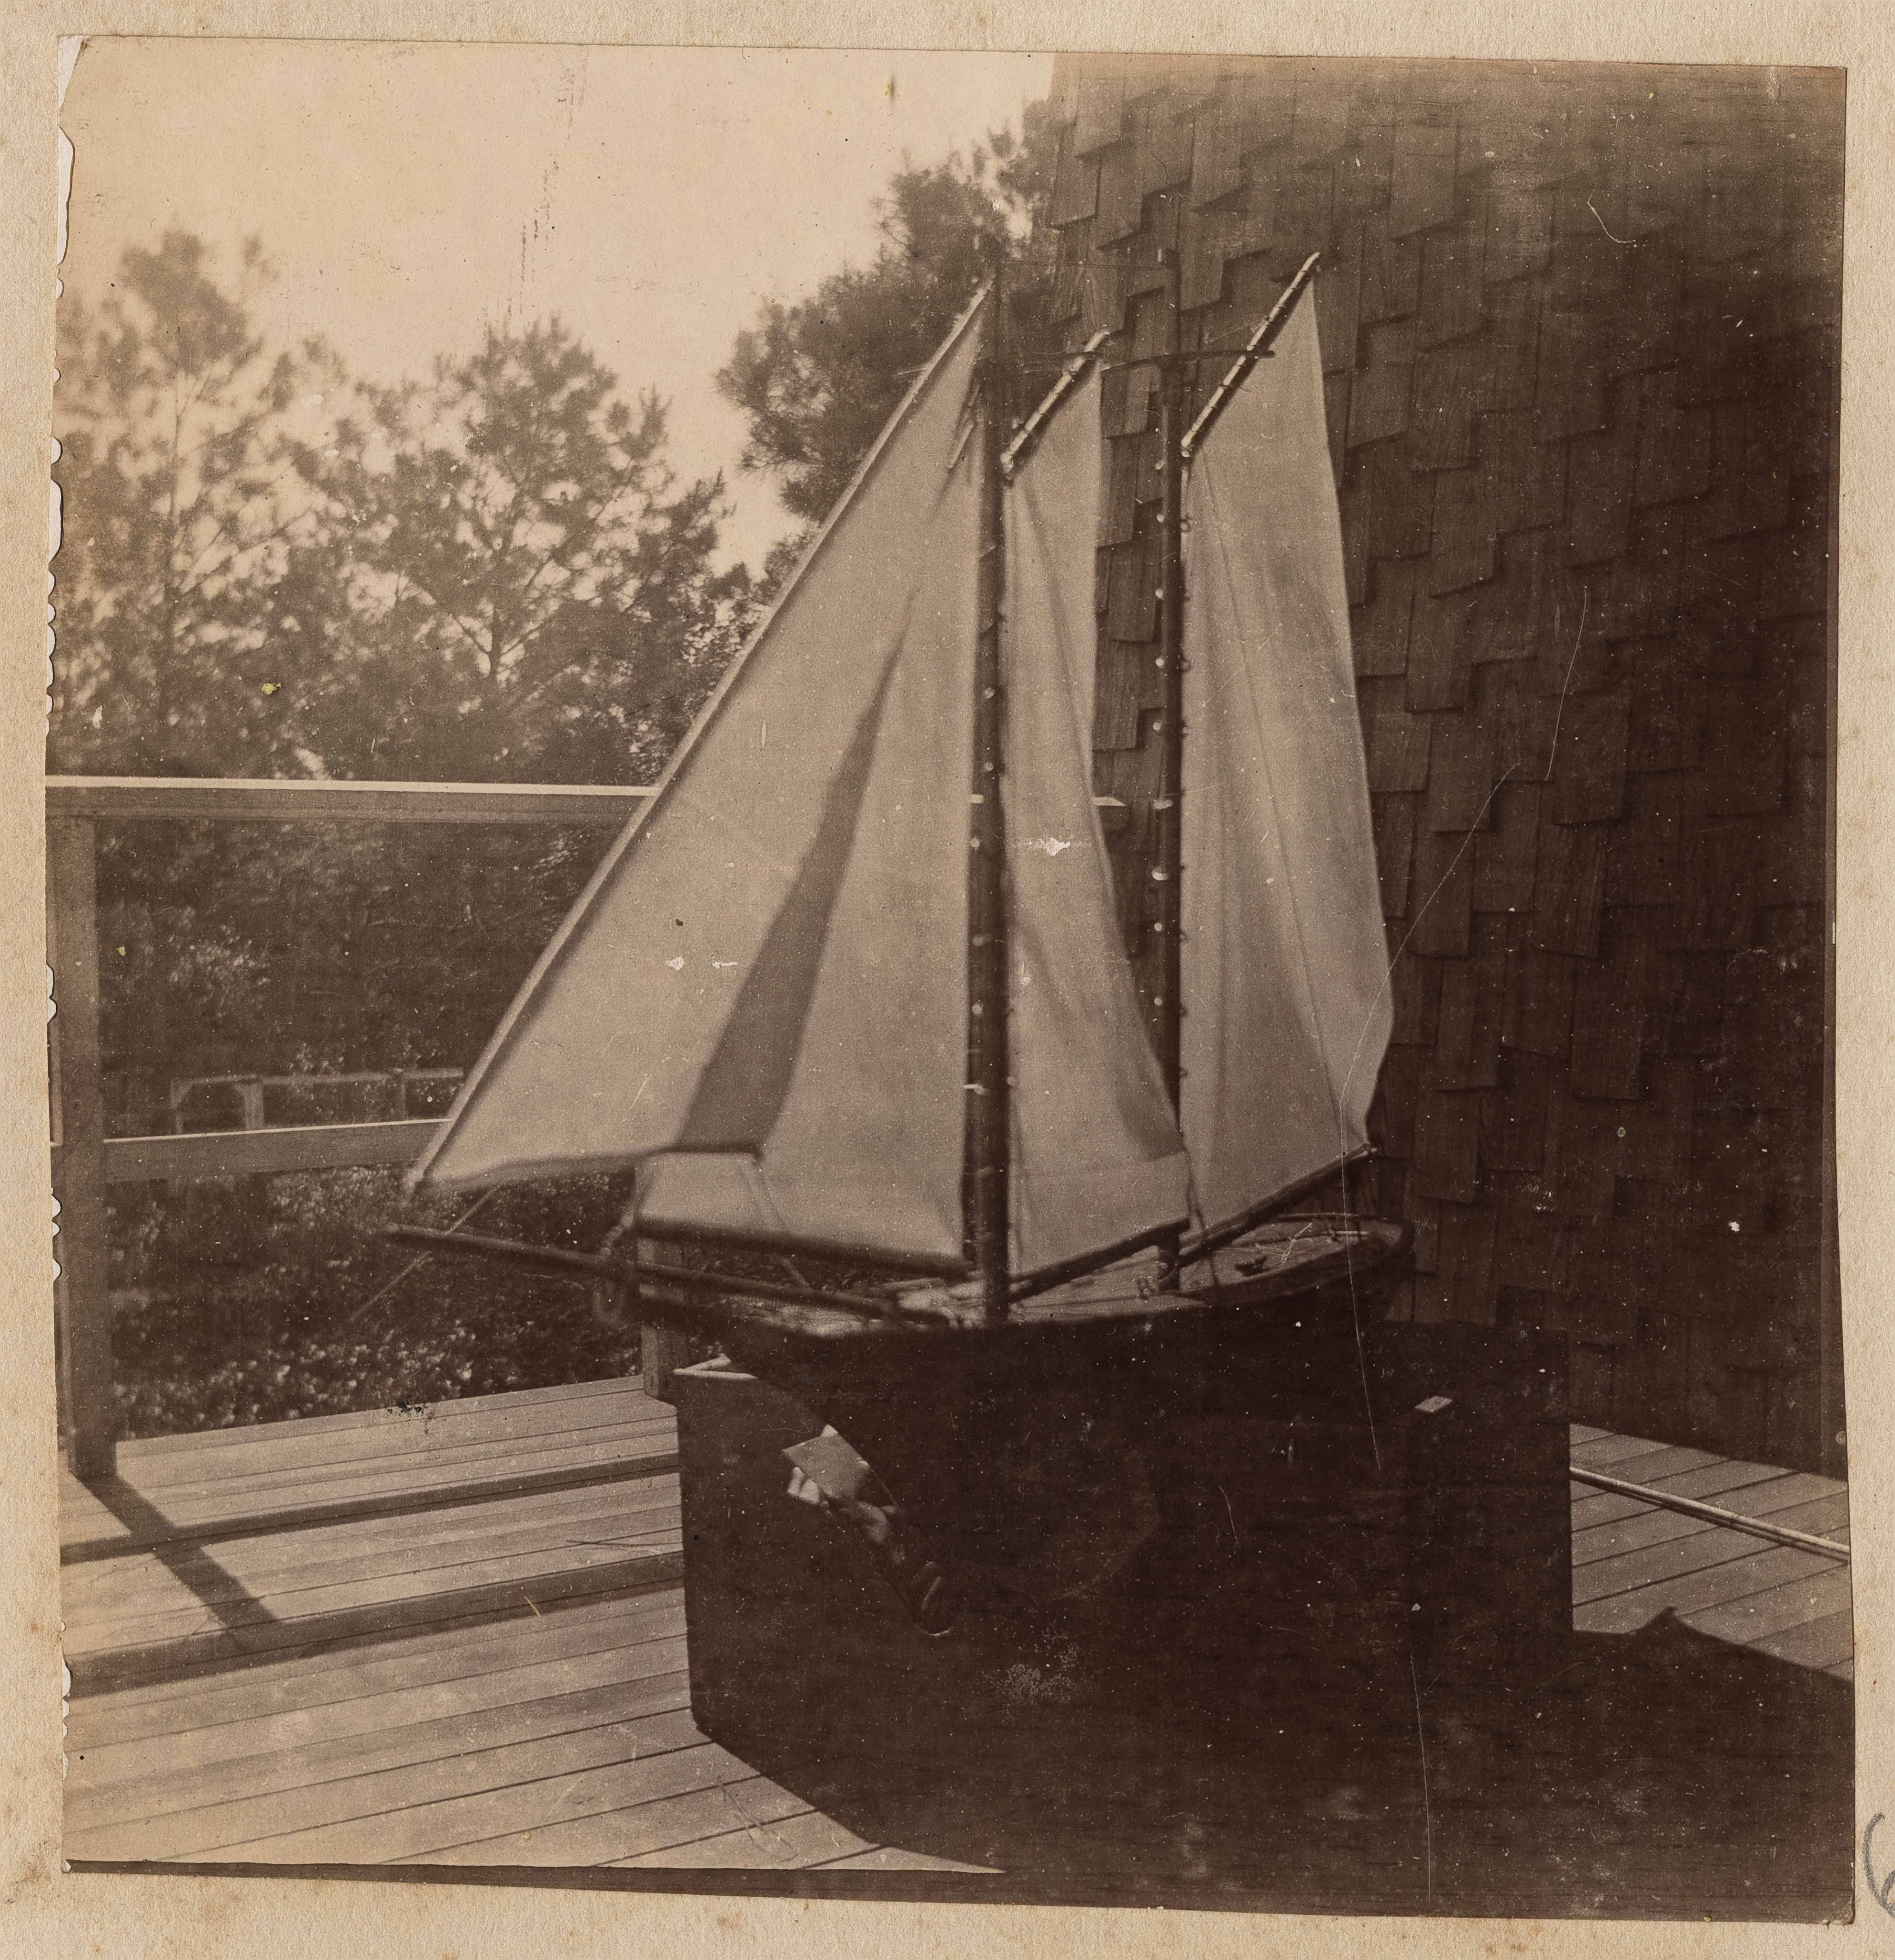 Four sails on model boat